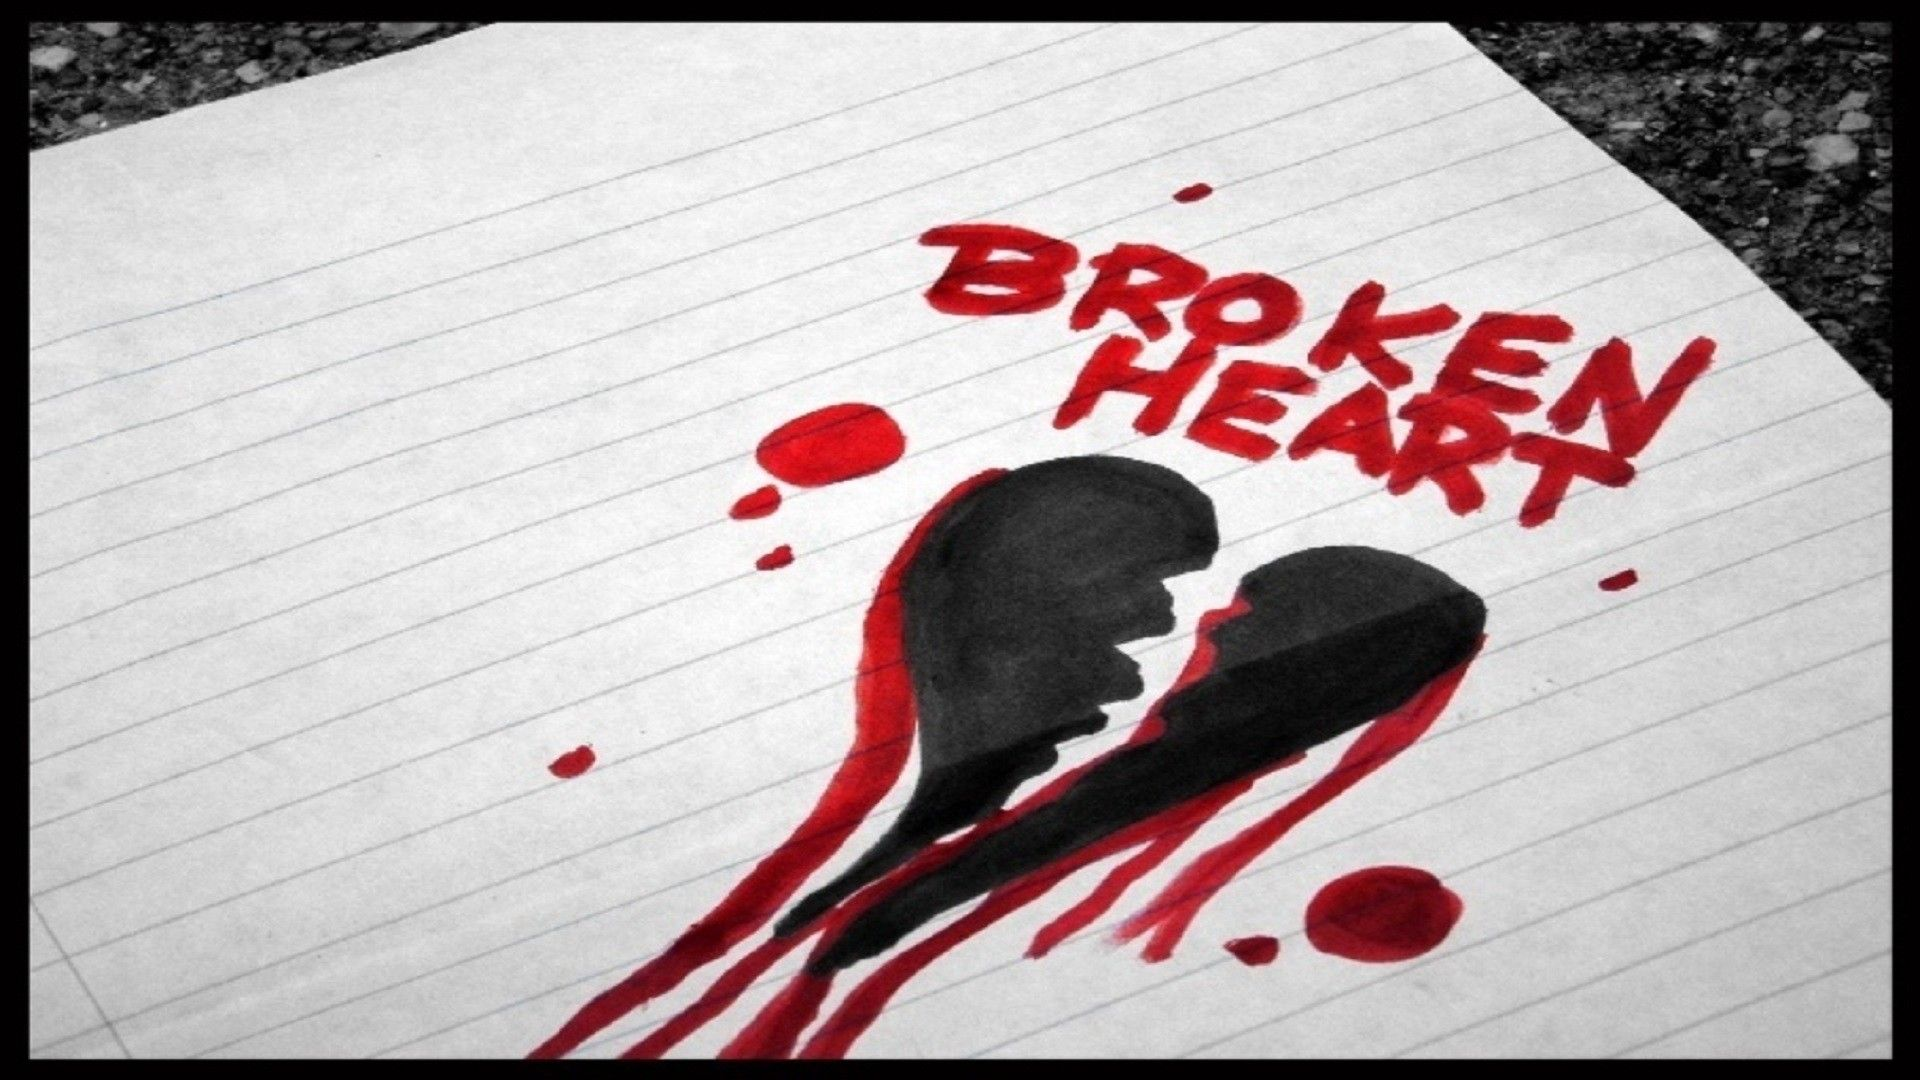 1920x1080 66+ Broken Heart Wallpapers on WallpaperPlay